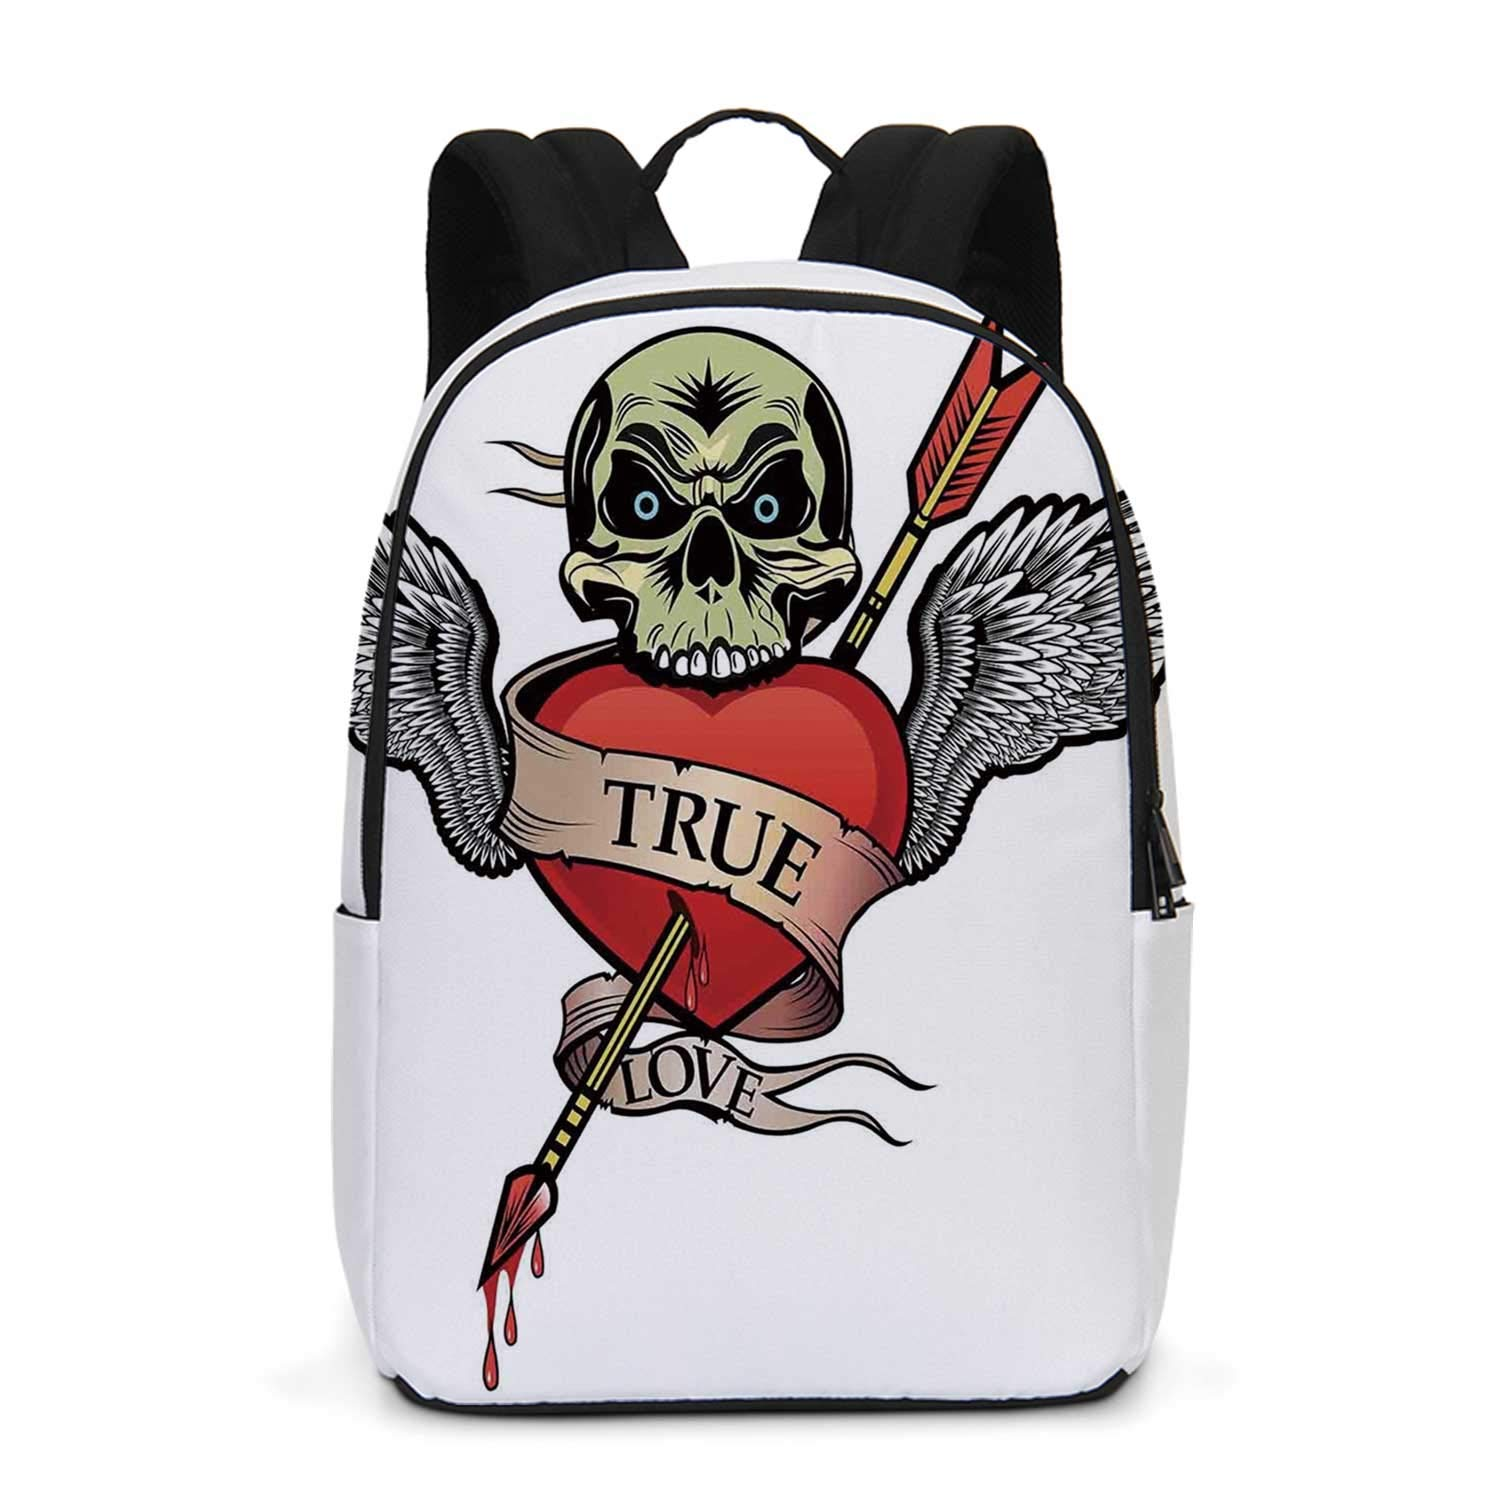 Tattoo Decor Durable Backpack,Skull with Diamond Eyes and Floral Vine Art Tattoo Renaissance Inspired for School Travel,One_Size